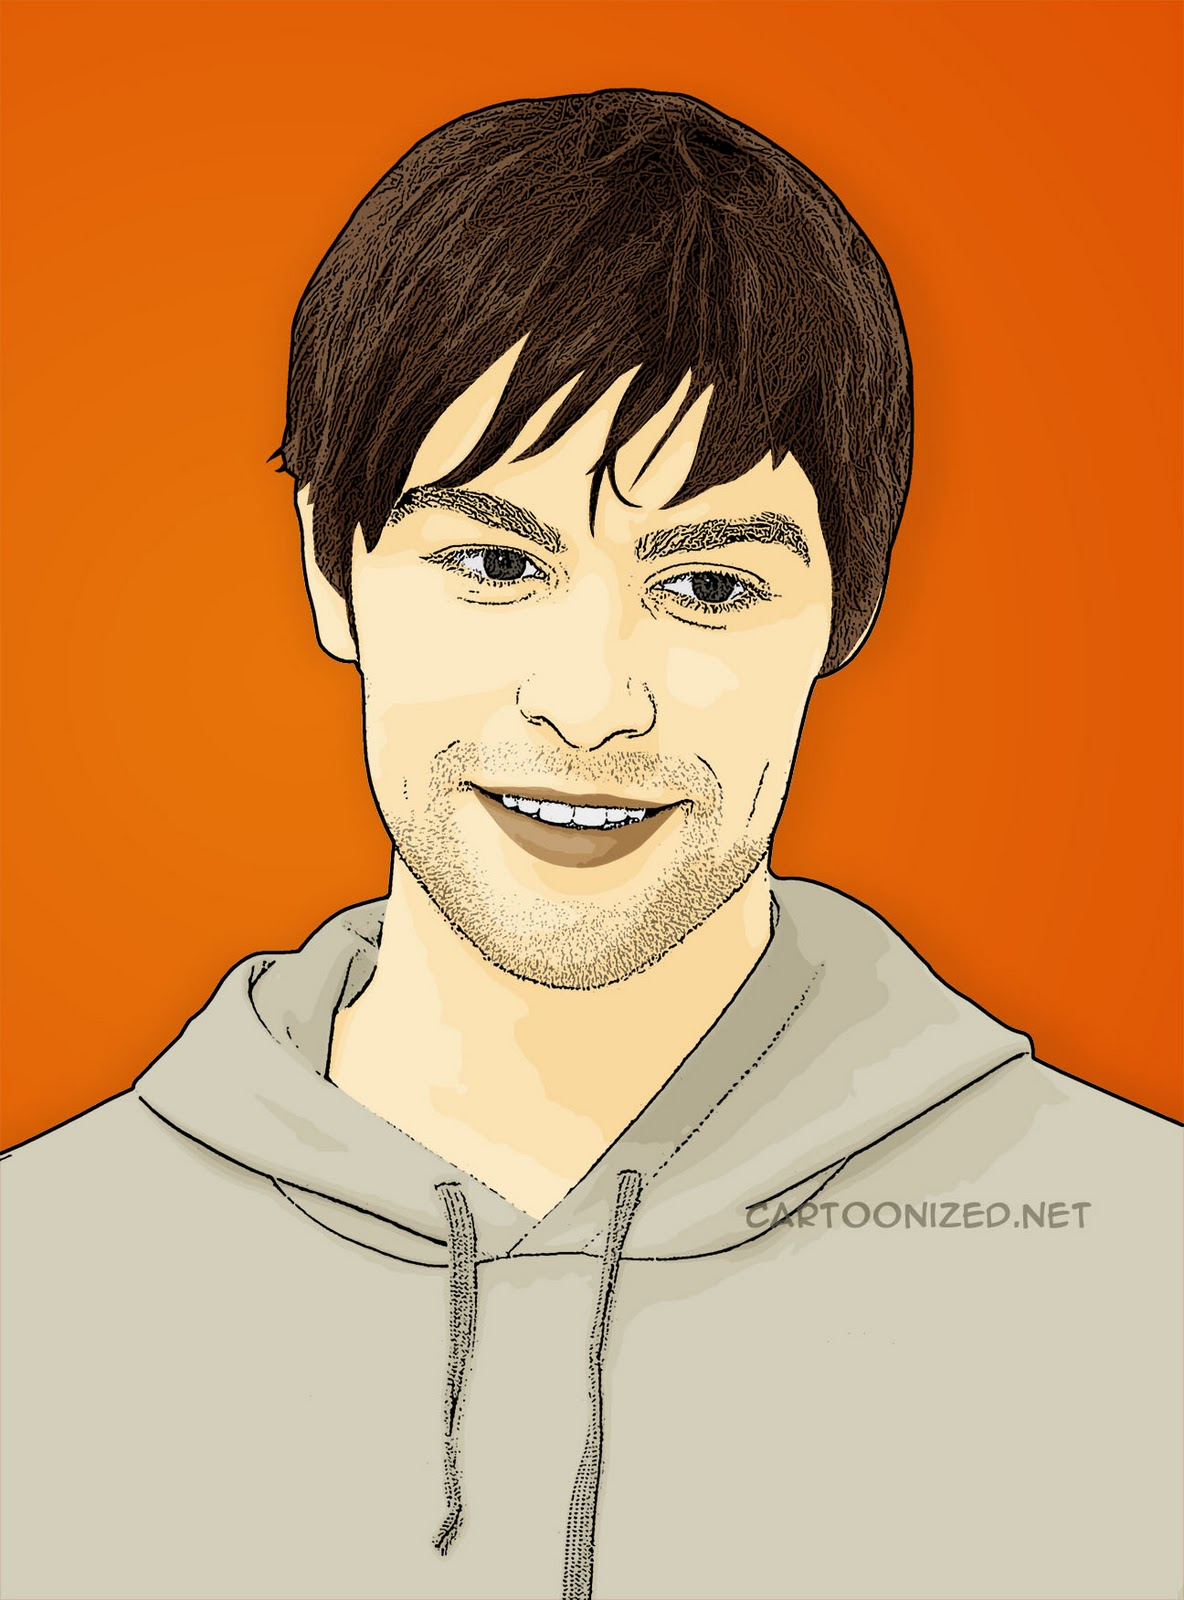 Cartoon pictures of chace crawford - Source